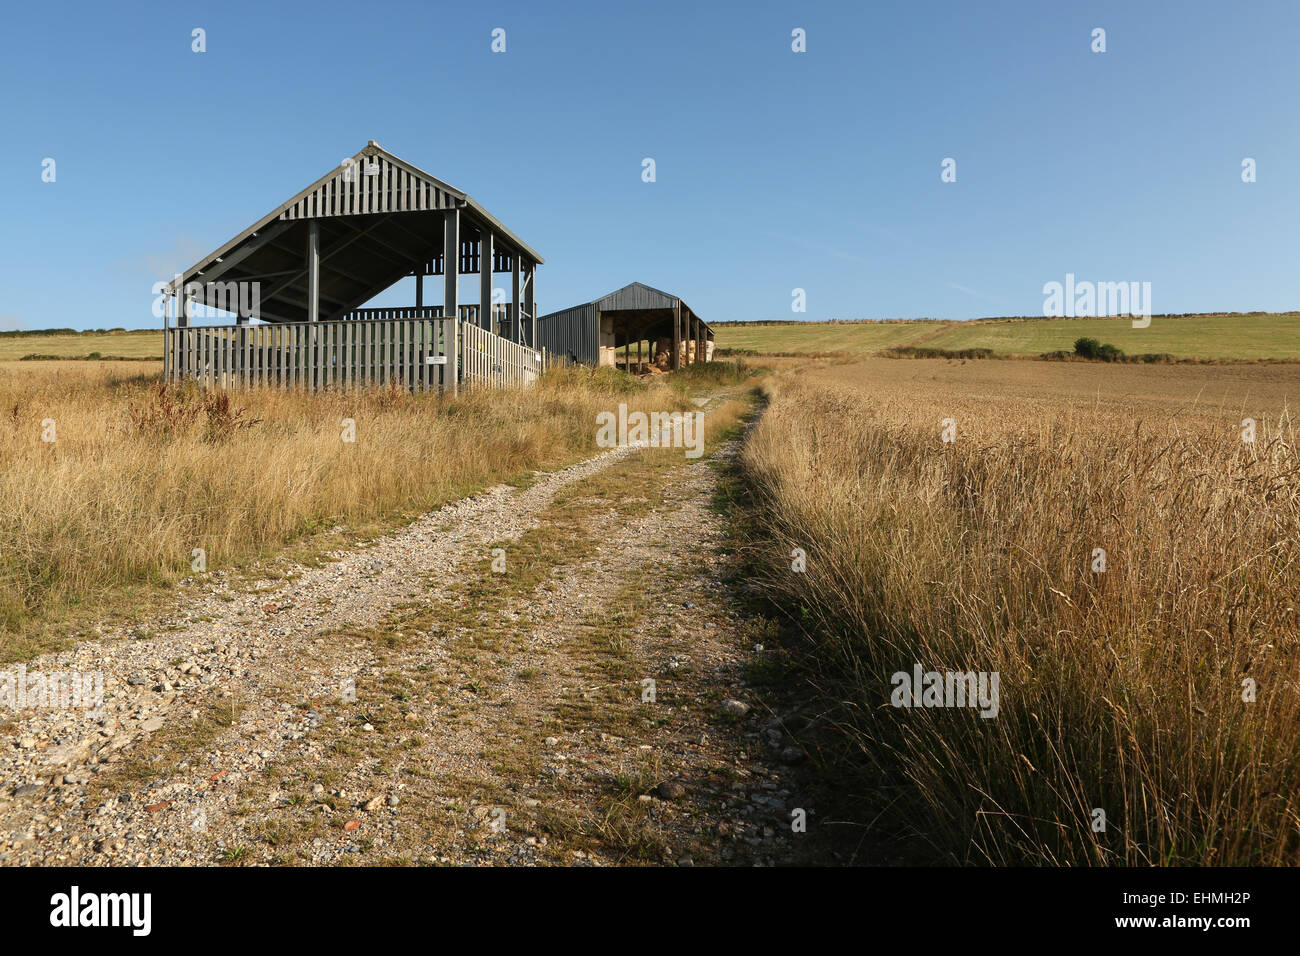 Agricultural building in a remote rural location - Stock Image